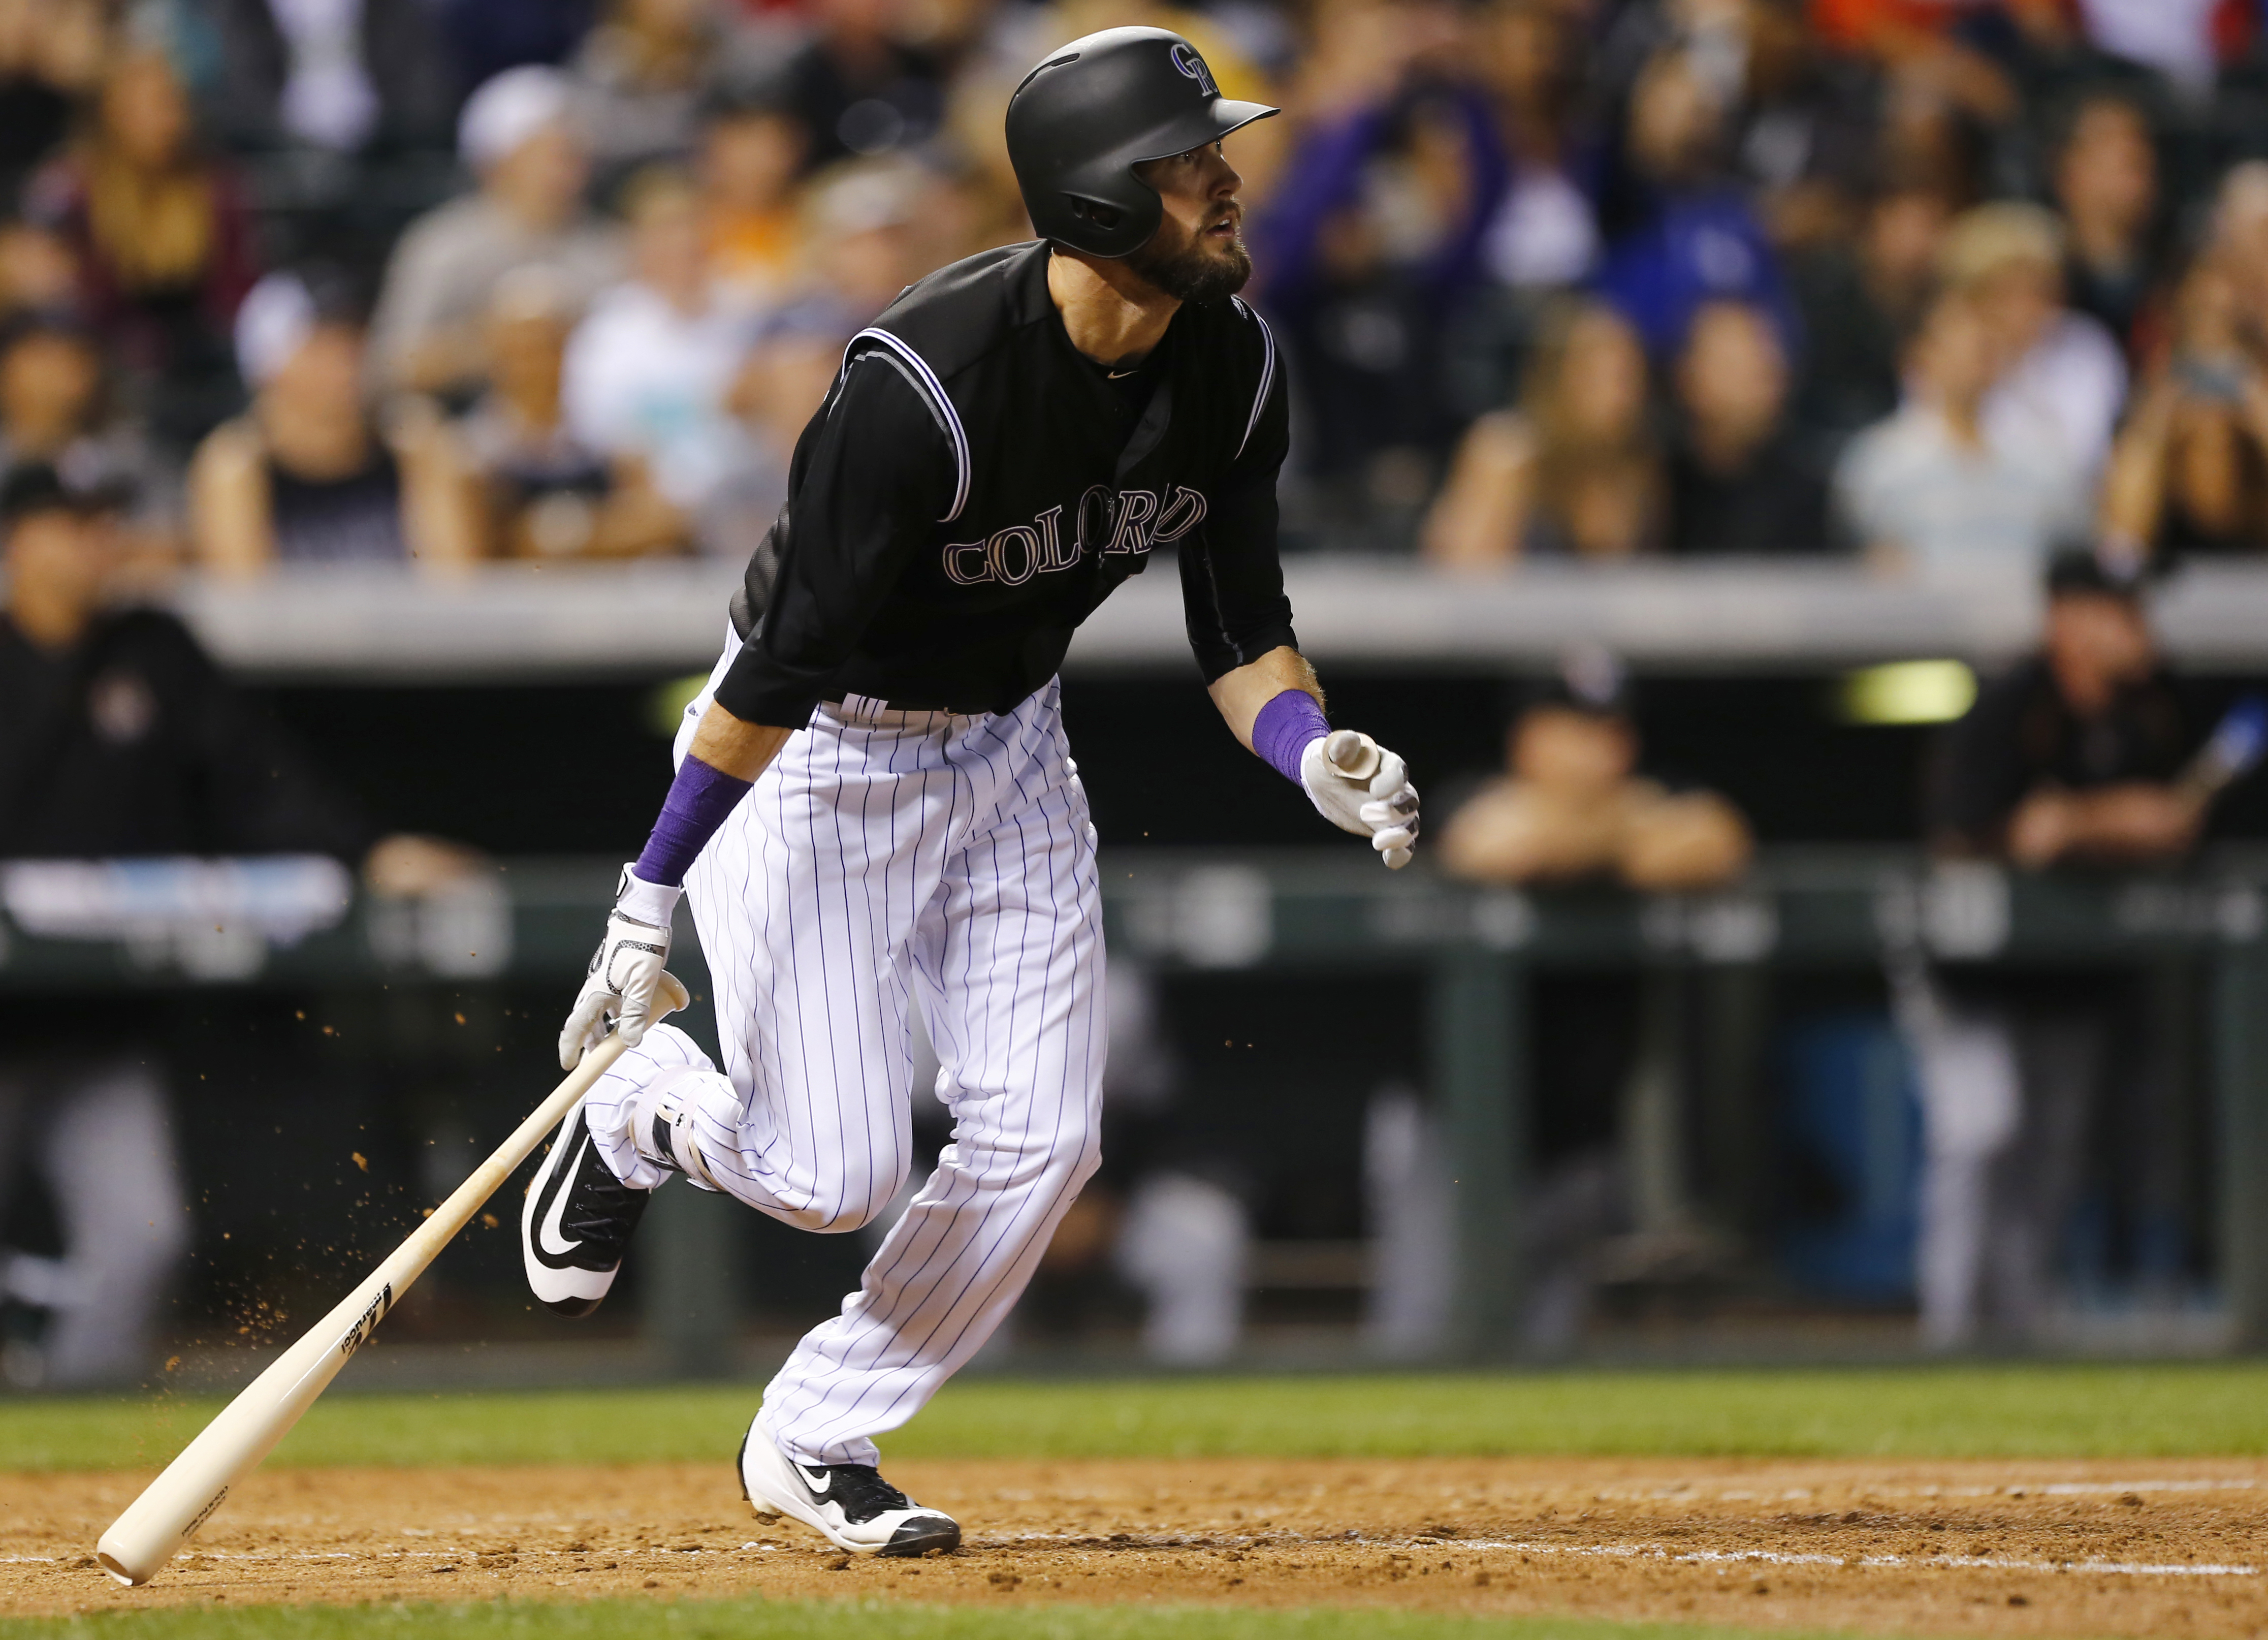 Colorado Rockies' David Dahl watches the flight of an RBI double ball hit against the Miami Marlins inning of a baseball game Friday, Aug. 5, 2016, in Denver. (AP Photo/Jack Dempsey)